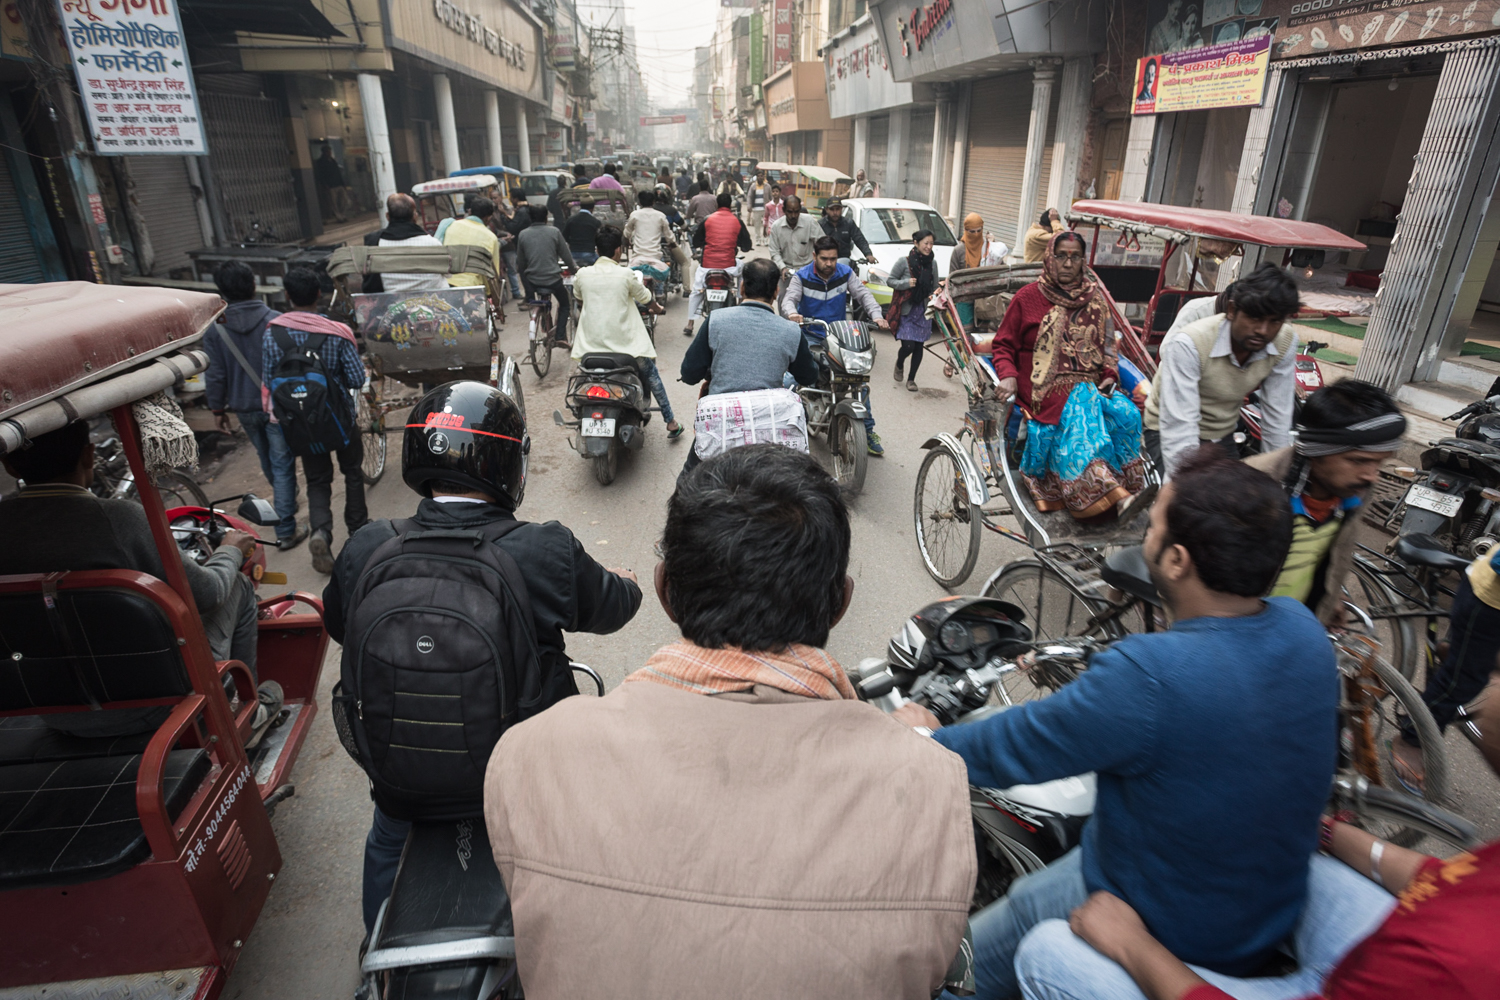 Typical bustling Indian street in Varanasi.